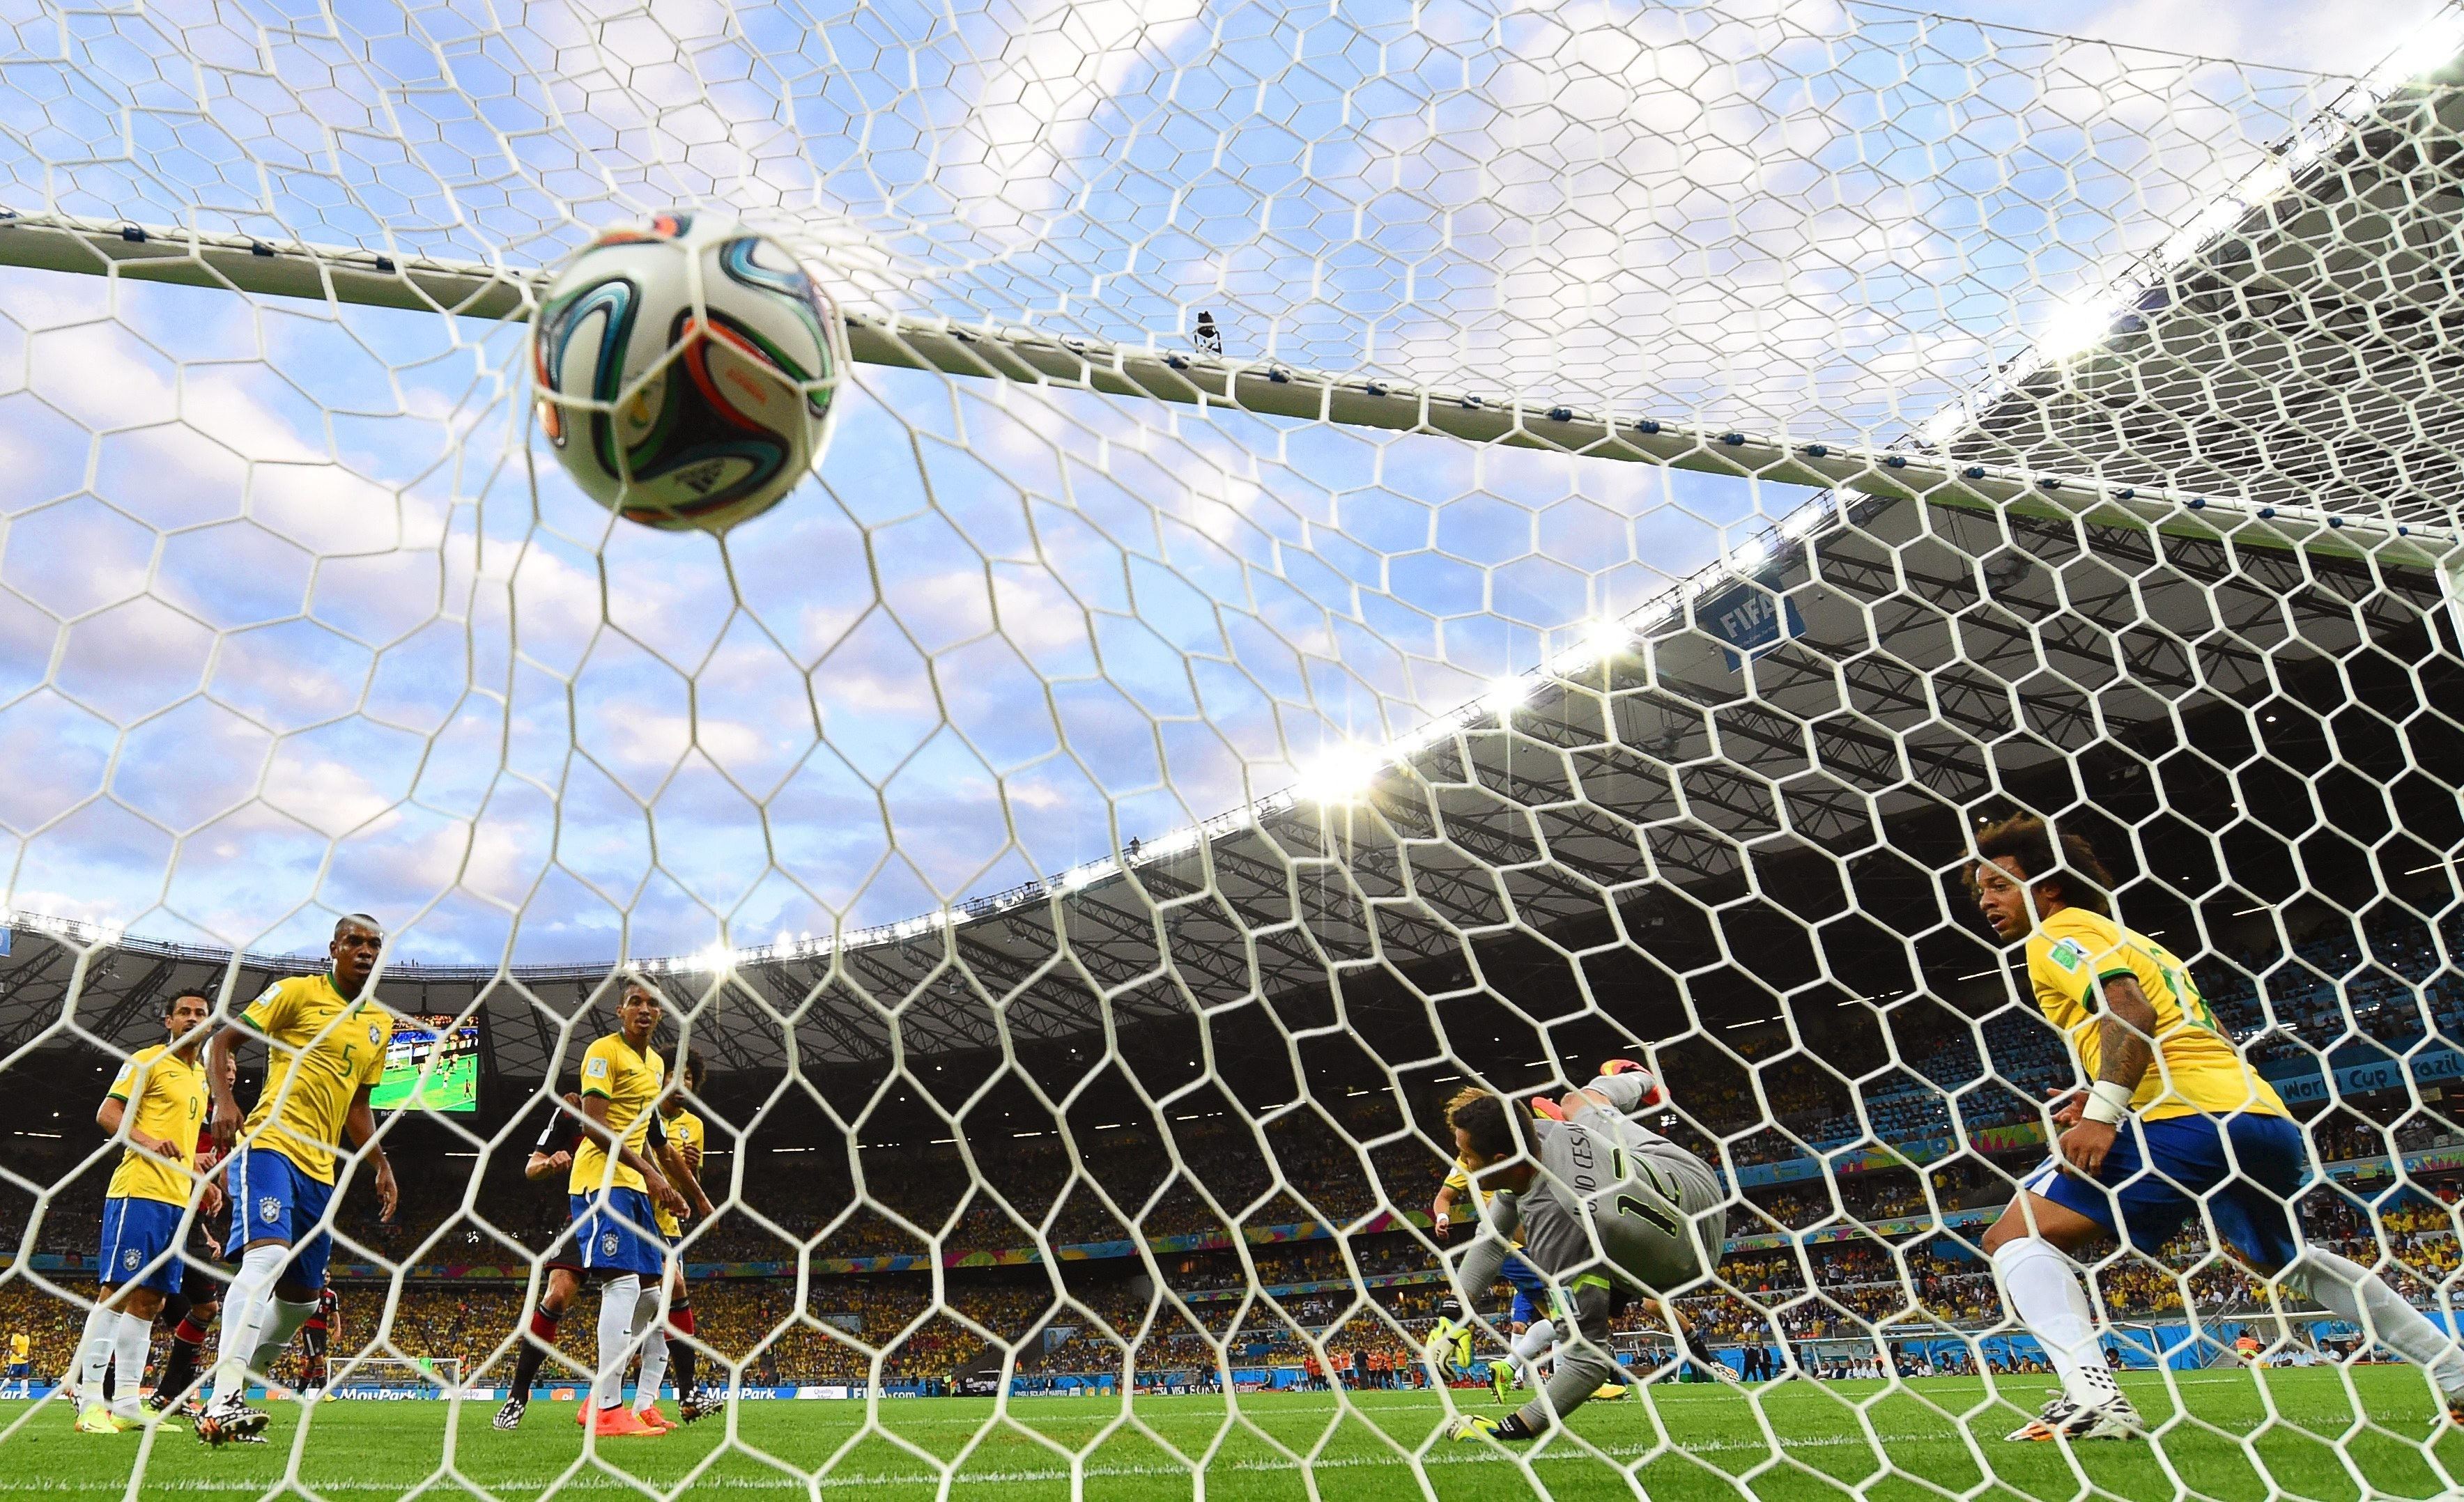 Brazil's goalkeeper Julio Cesar receives the opening goal during the match between Brazil and Germany at the Estadio Mineirao in Belo Horizonte, Brazil on July 8, 2014.